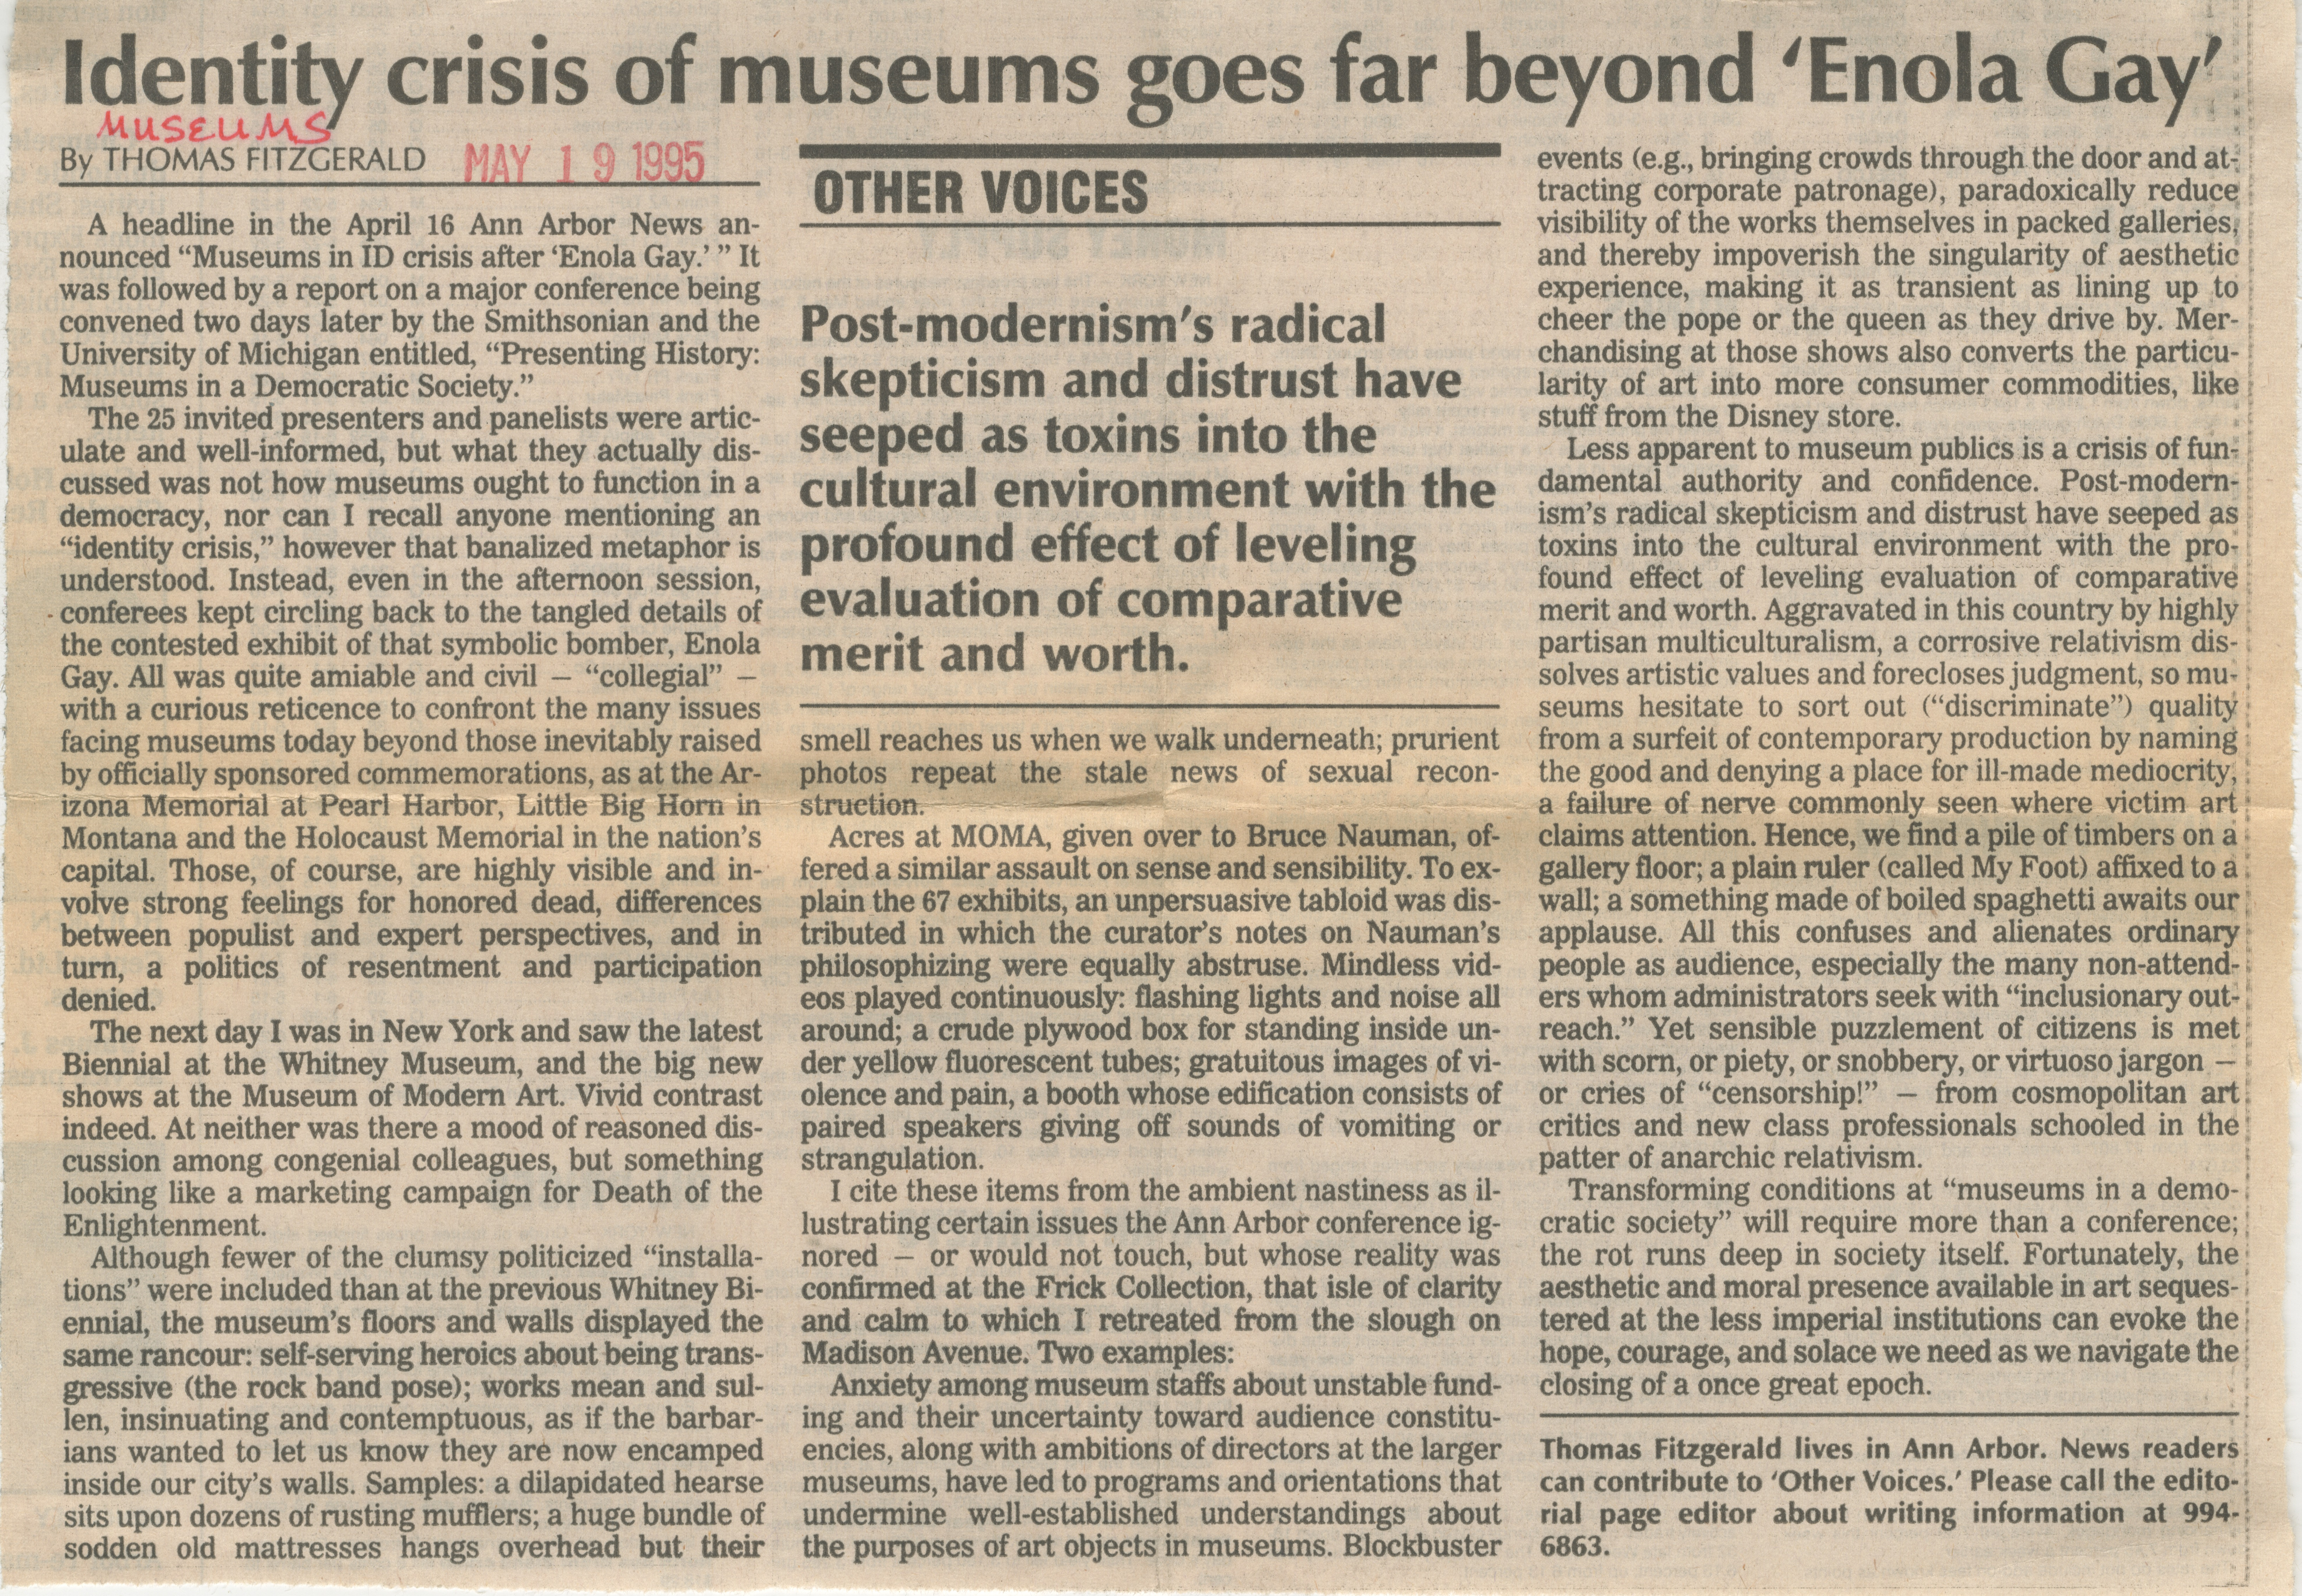 Identity Crisis Of Museums Goes Far Beyond 'Enola Gay' image